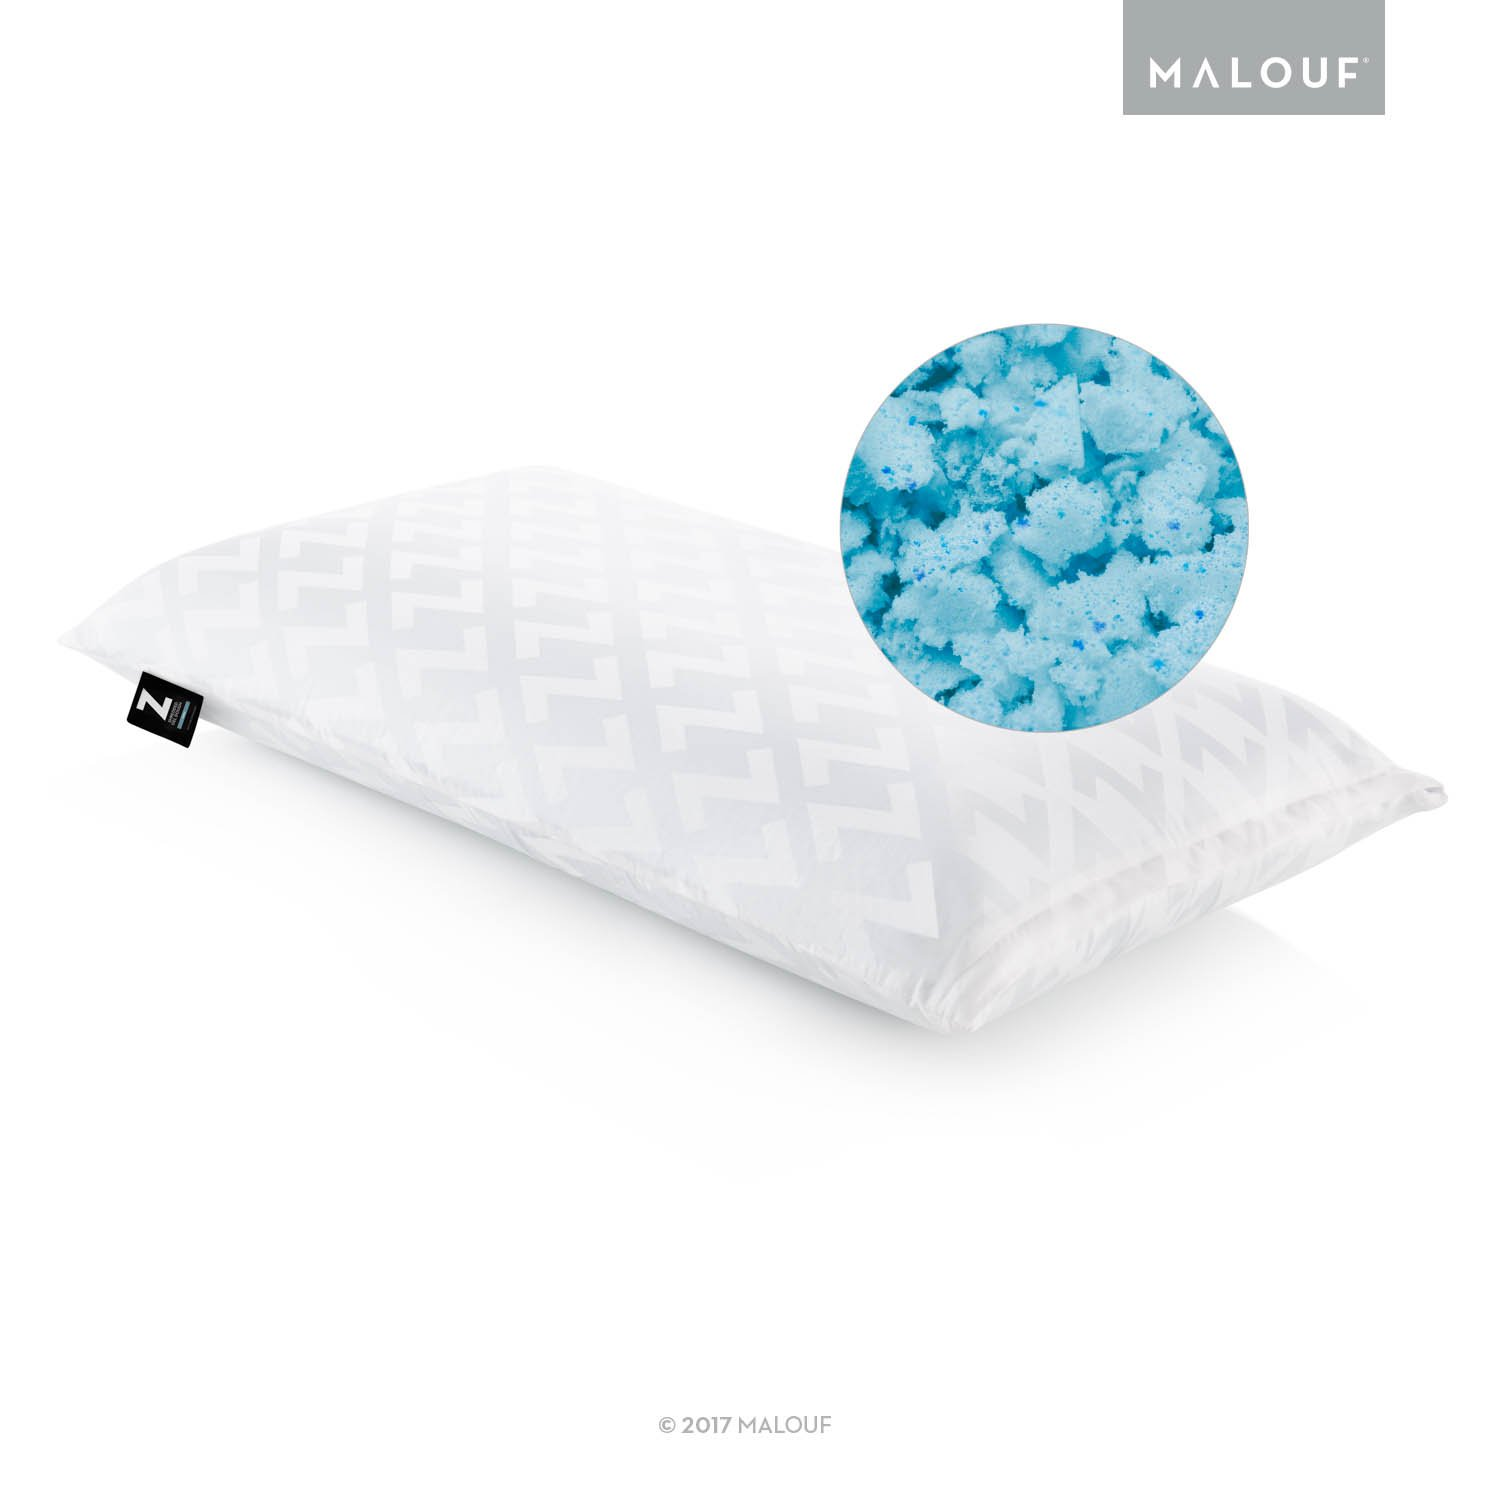 MALOUF Z Shredded Gel Infused Memory Foam Pillow - Queen, White